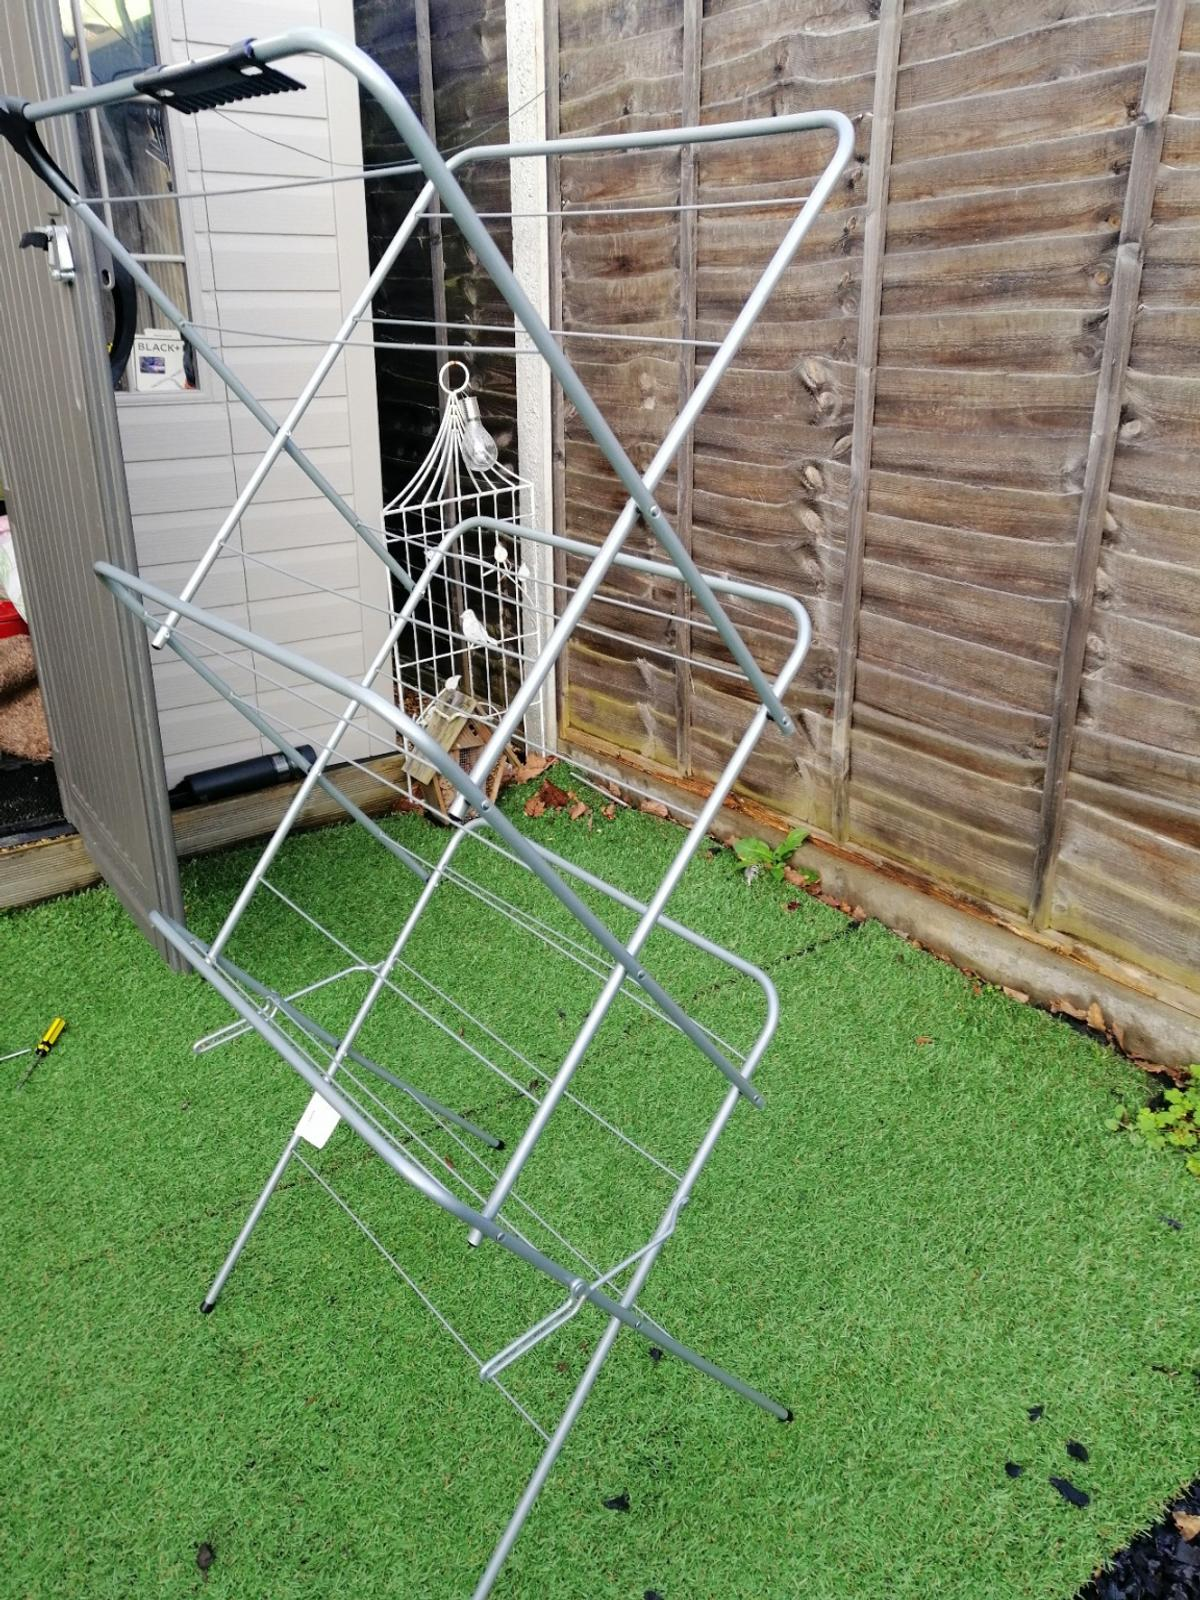 Handy compact size, folds when you need it. Holds up to 14 metres of washing with 3 tiers. Used few times. Handy coat hanger hooks included.